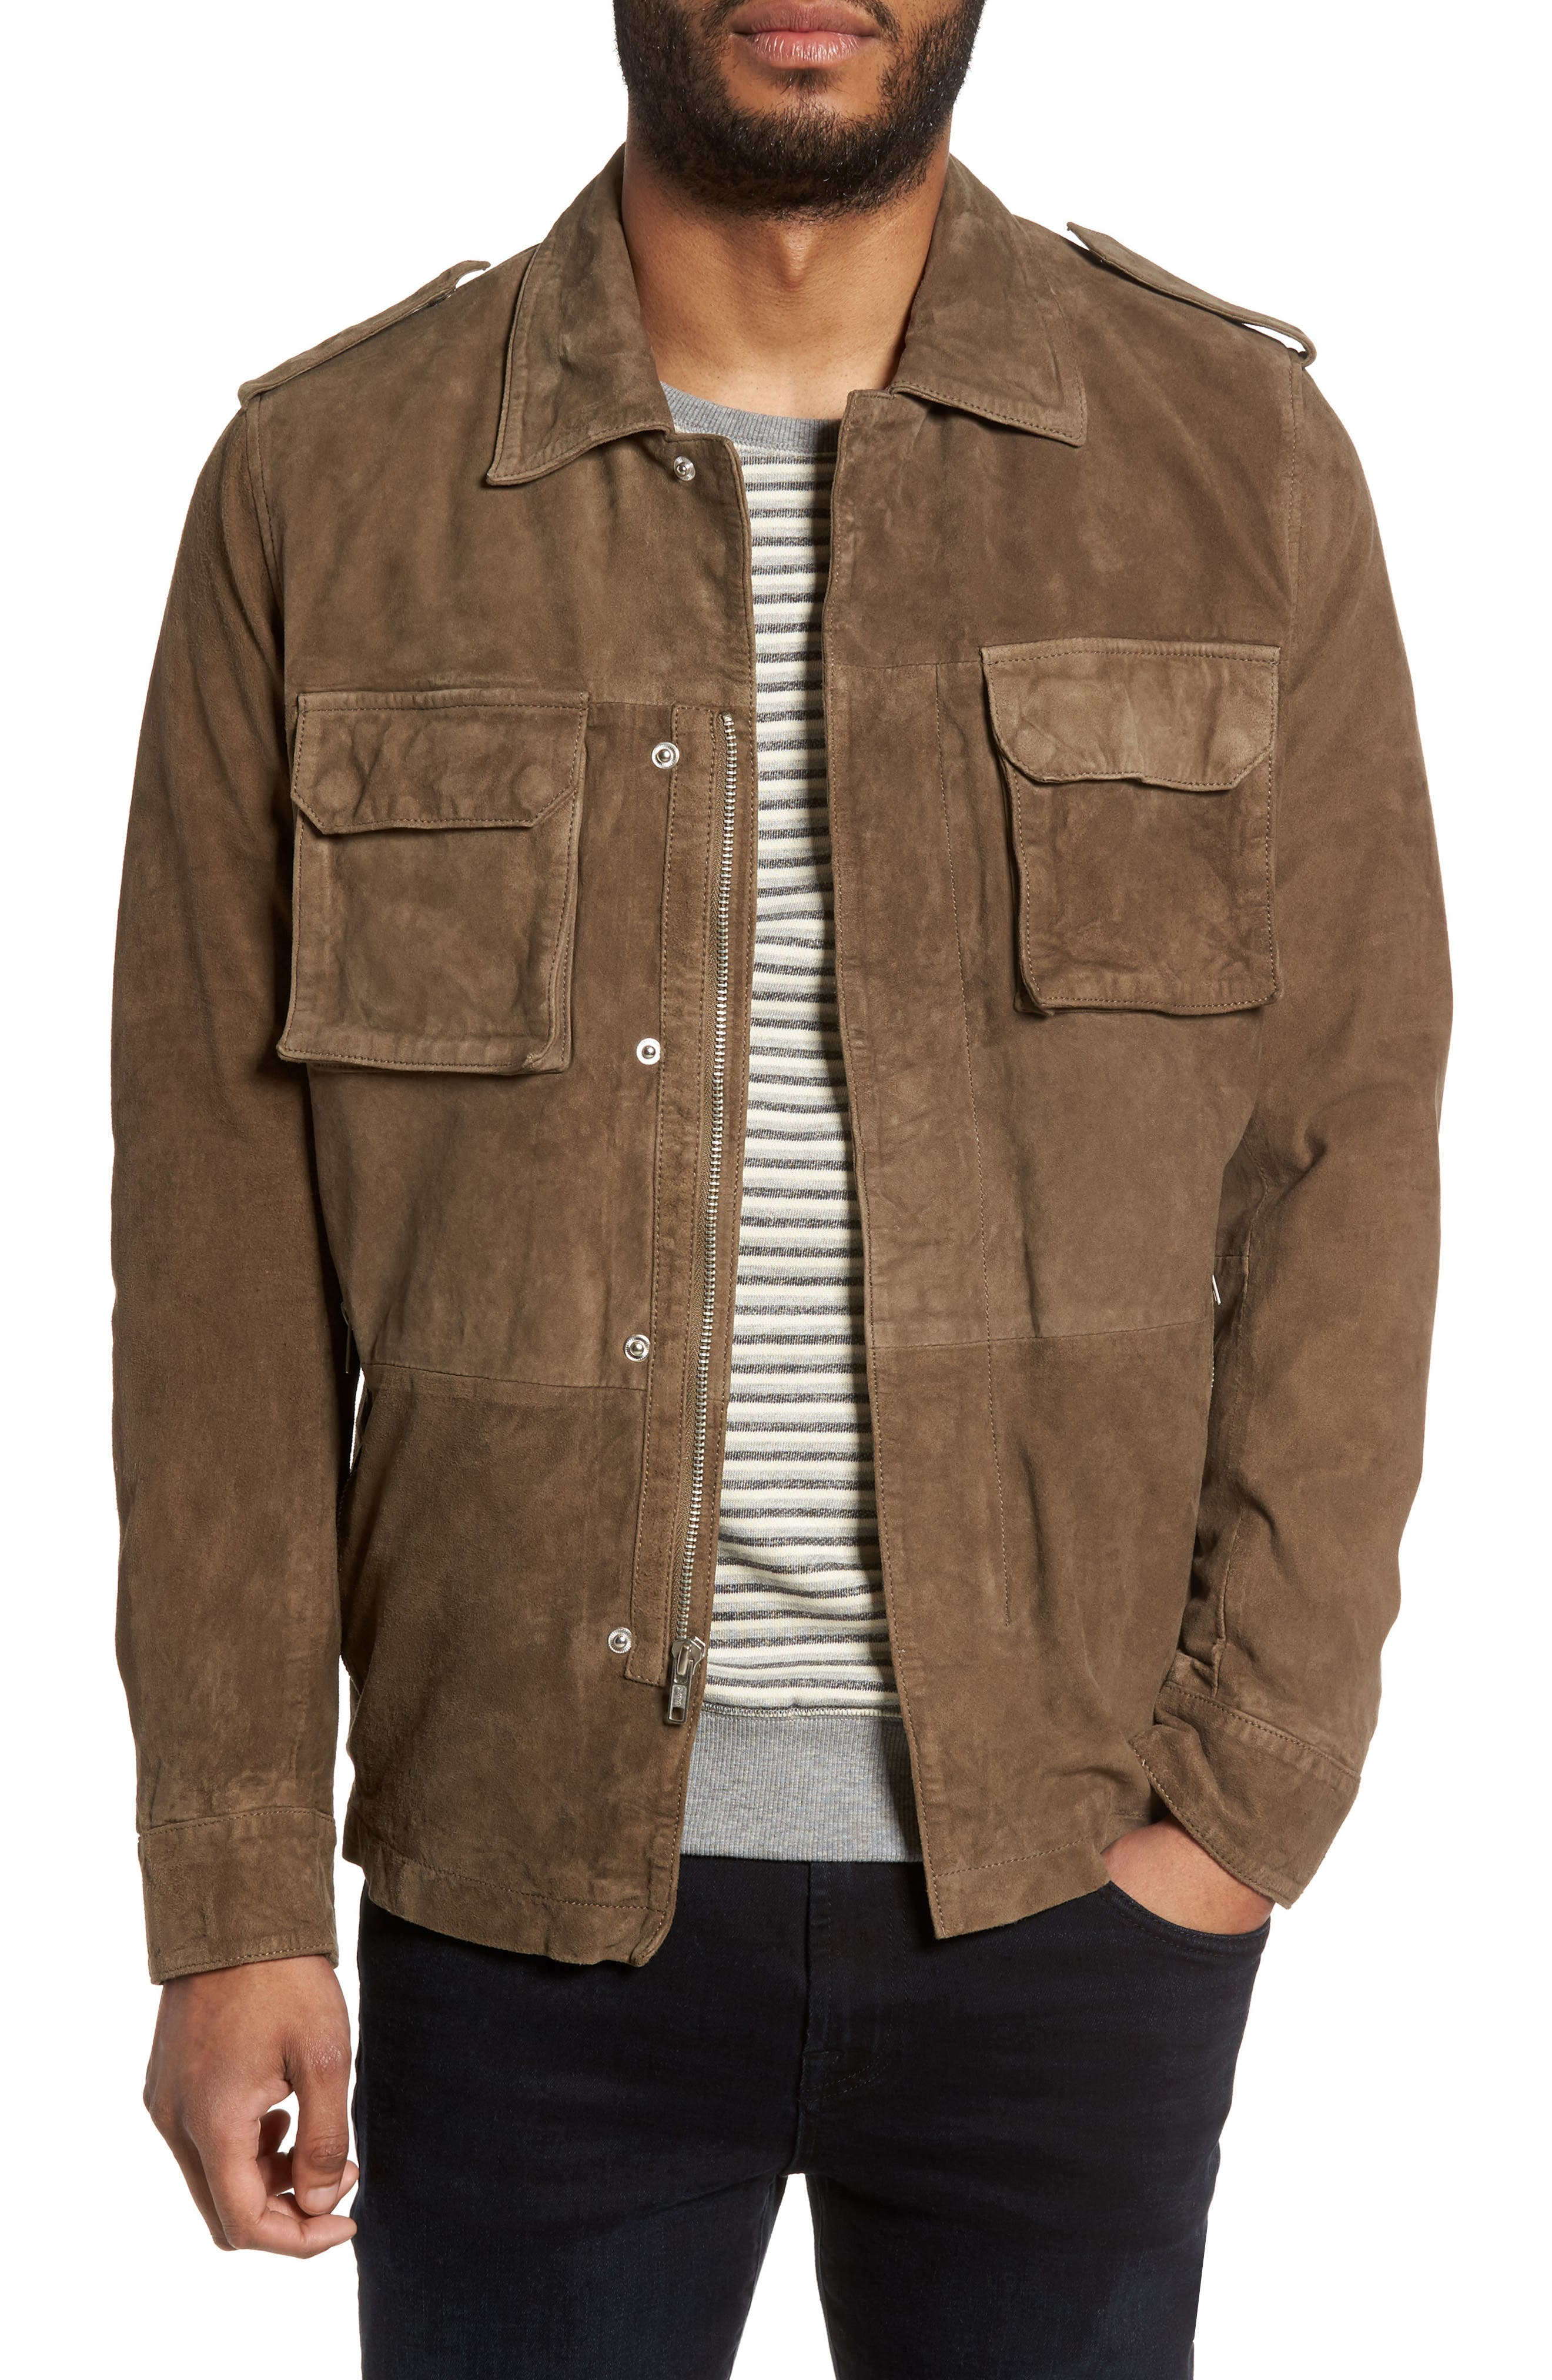 Main Image - LAMARQUE Washed Suede Military Shirt Jacket